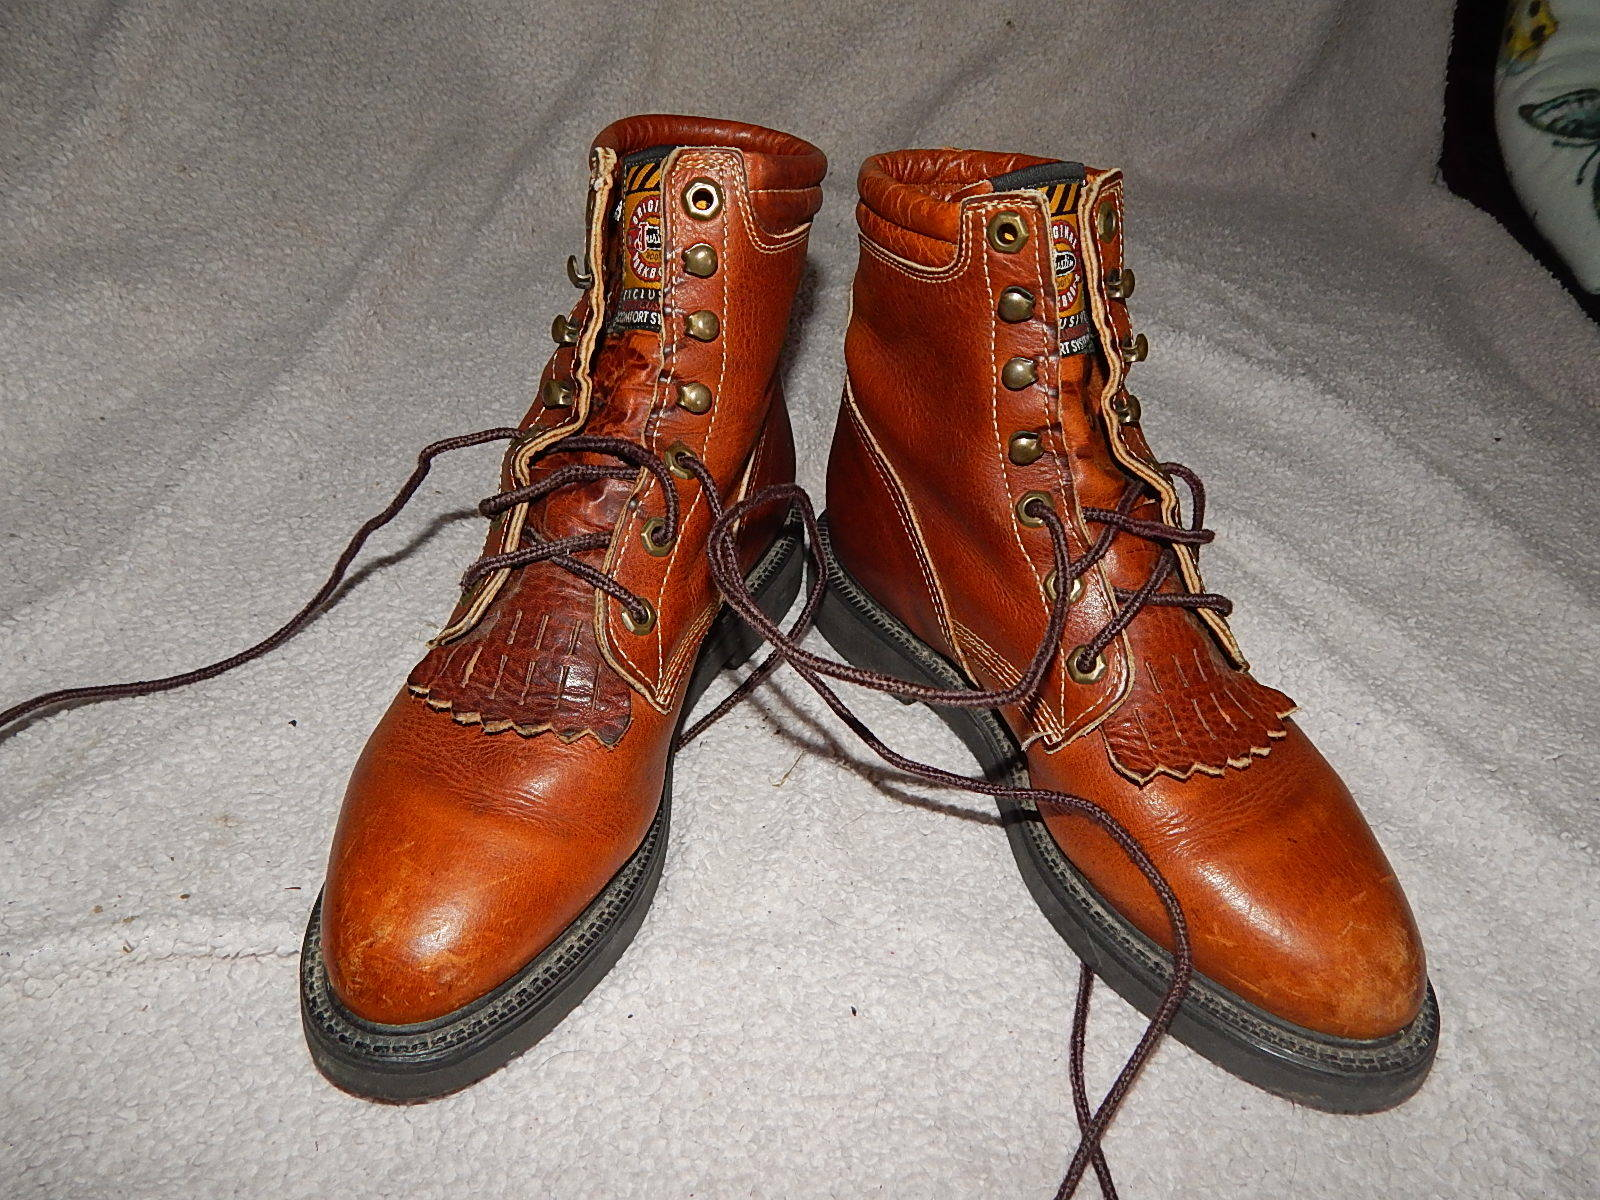 JUSTIN Work Boots Women's 6.5 C Wid Lace-Up Western Roper Excellent USA